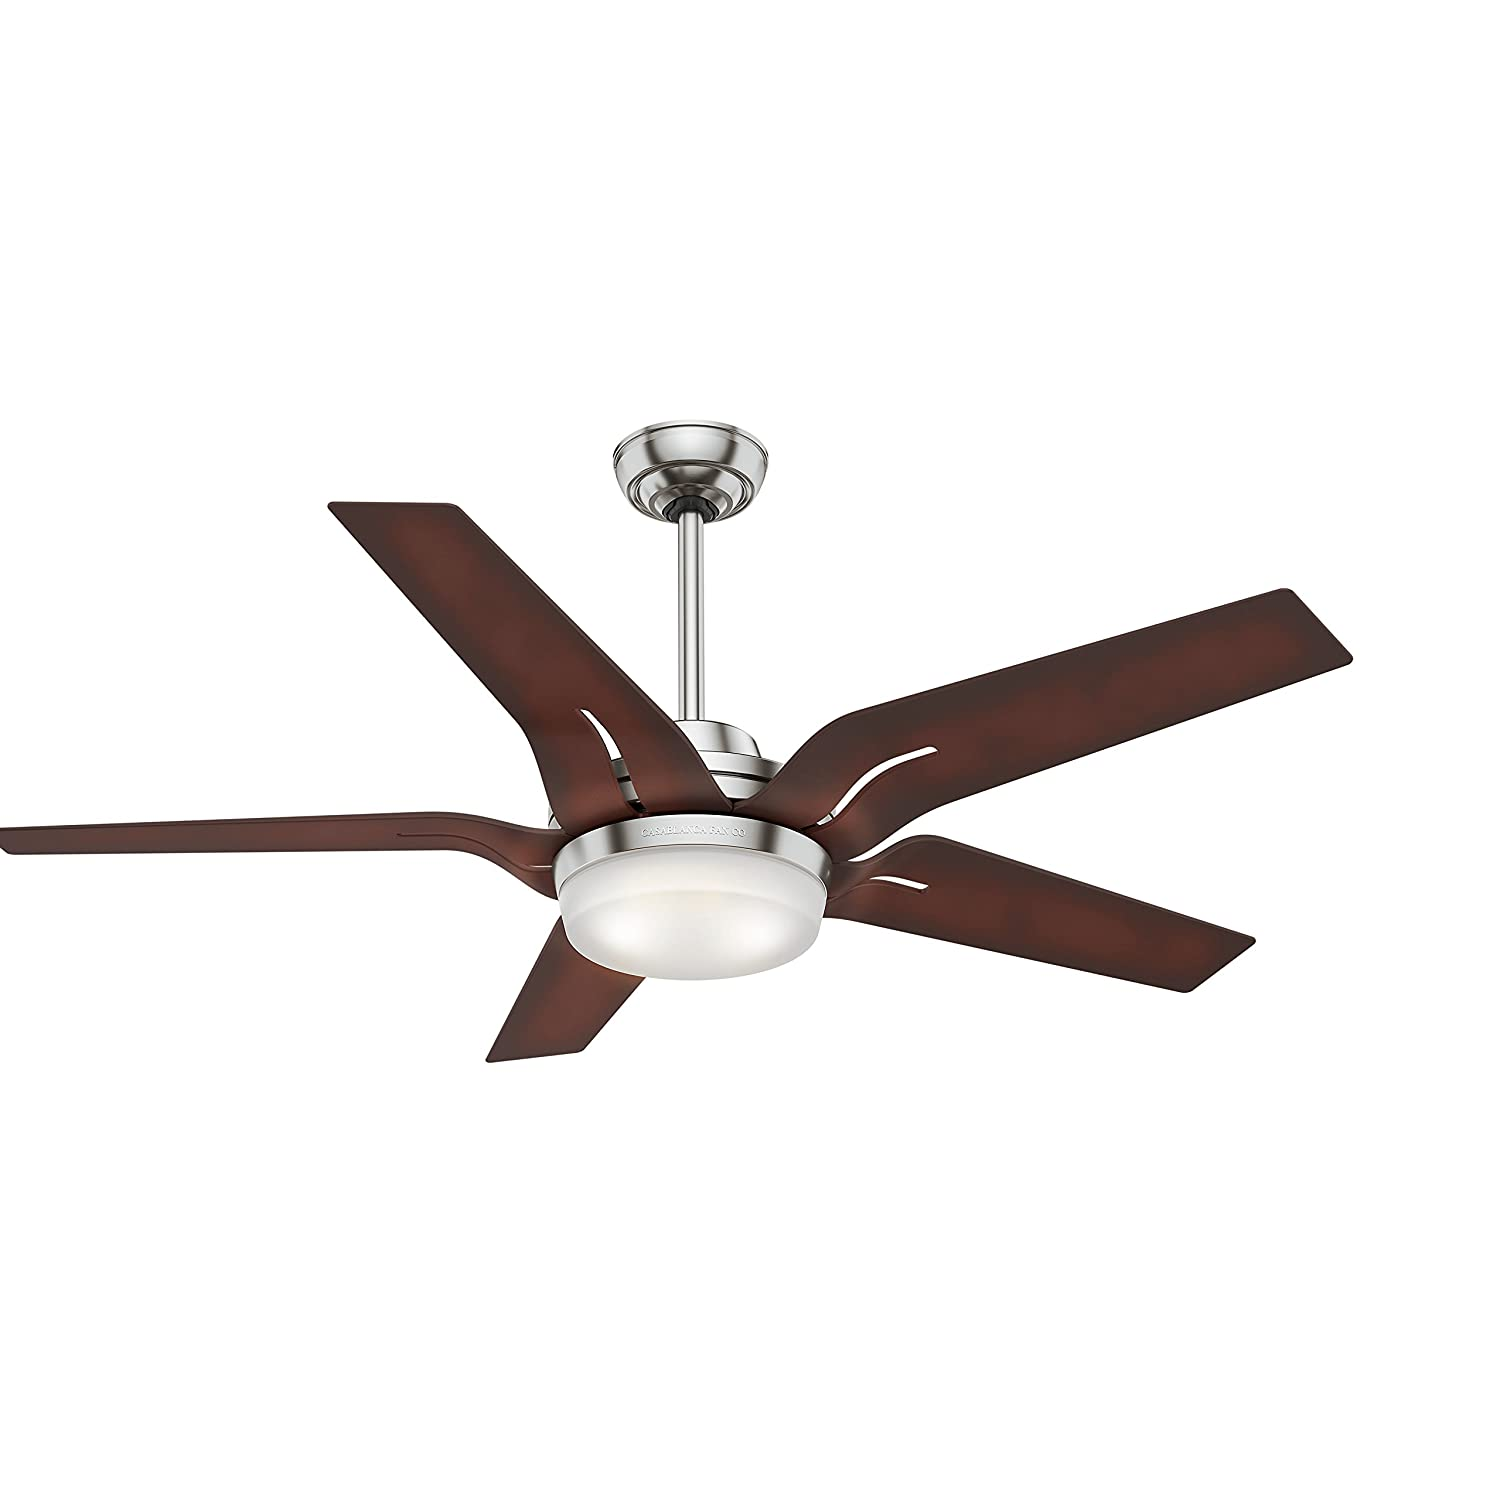 Casablanca Indoor Ceiling Fan with LED Light and Remote Control – Correne Gables 56 inch, Brushed Nickel, 59198